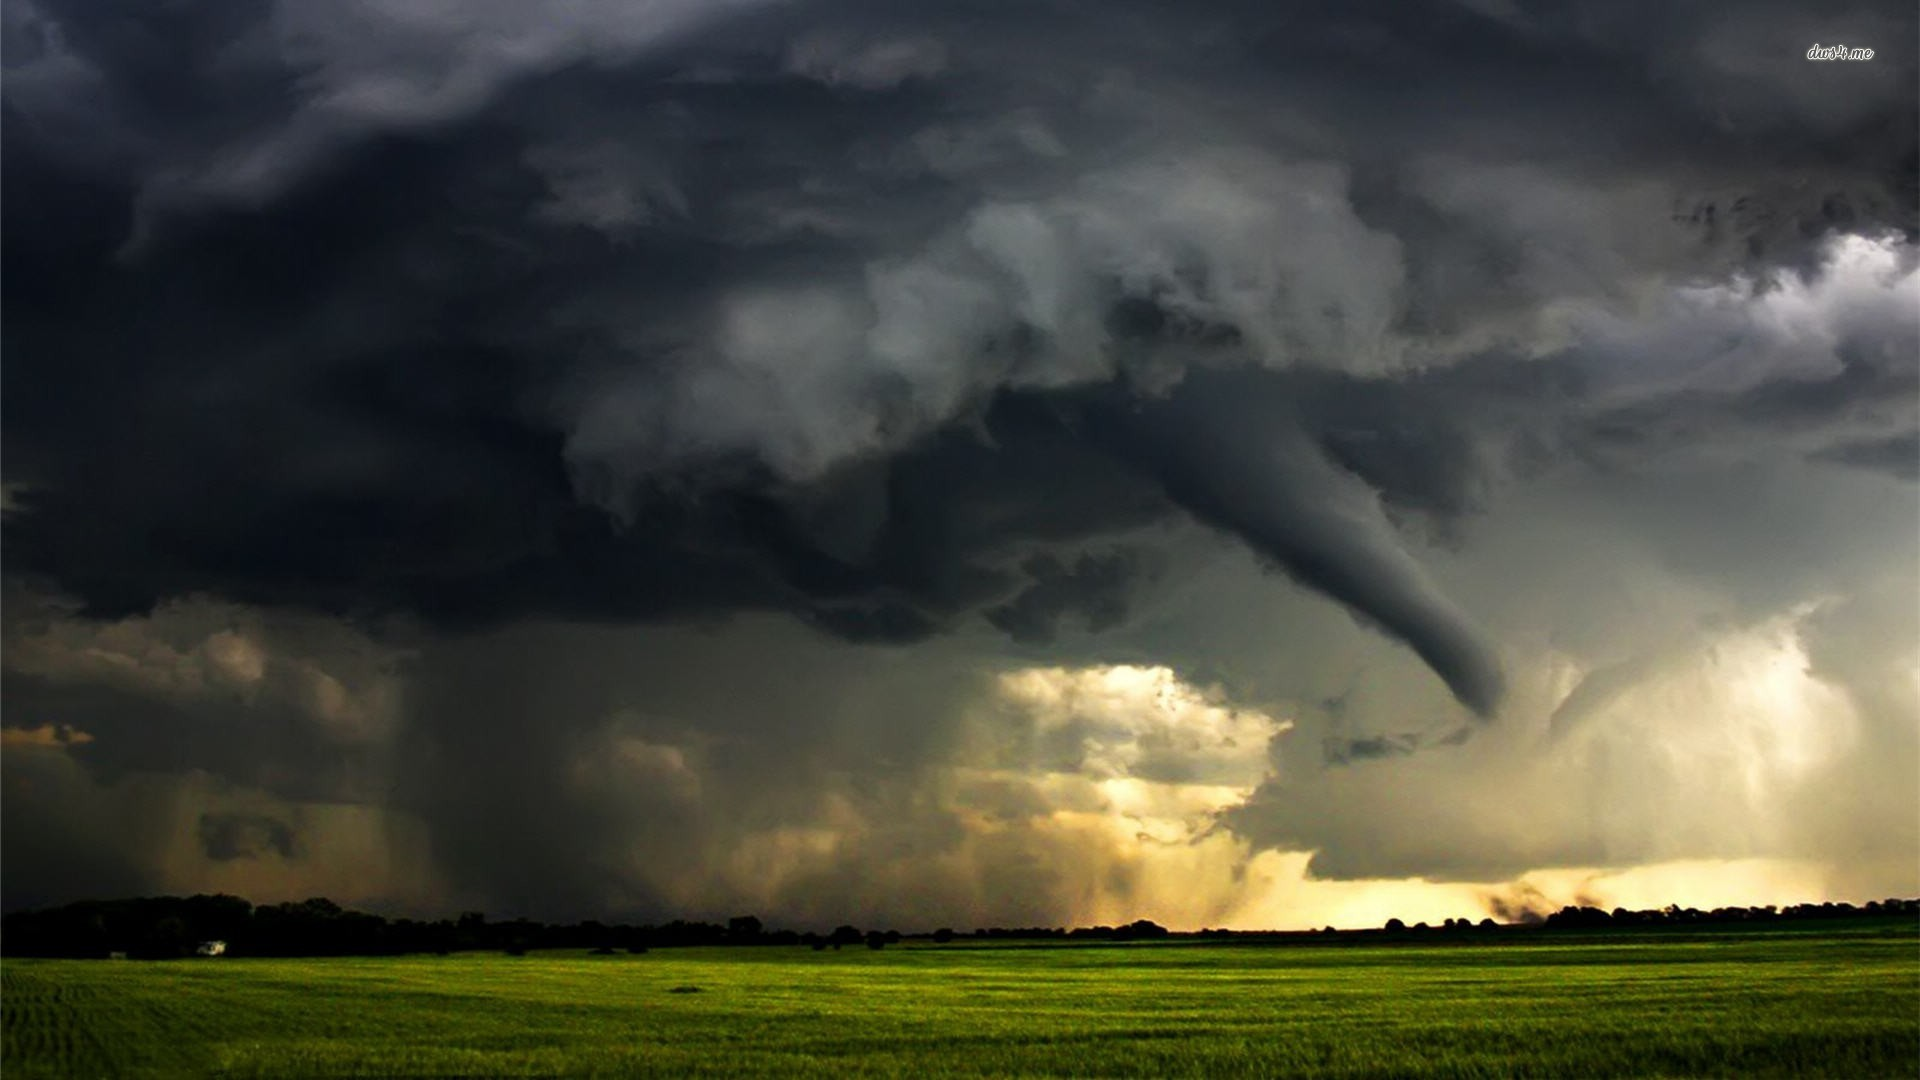 Download Severe Weather Wallpaper Gallery